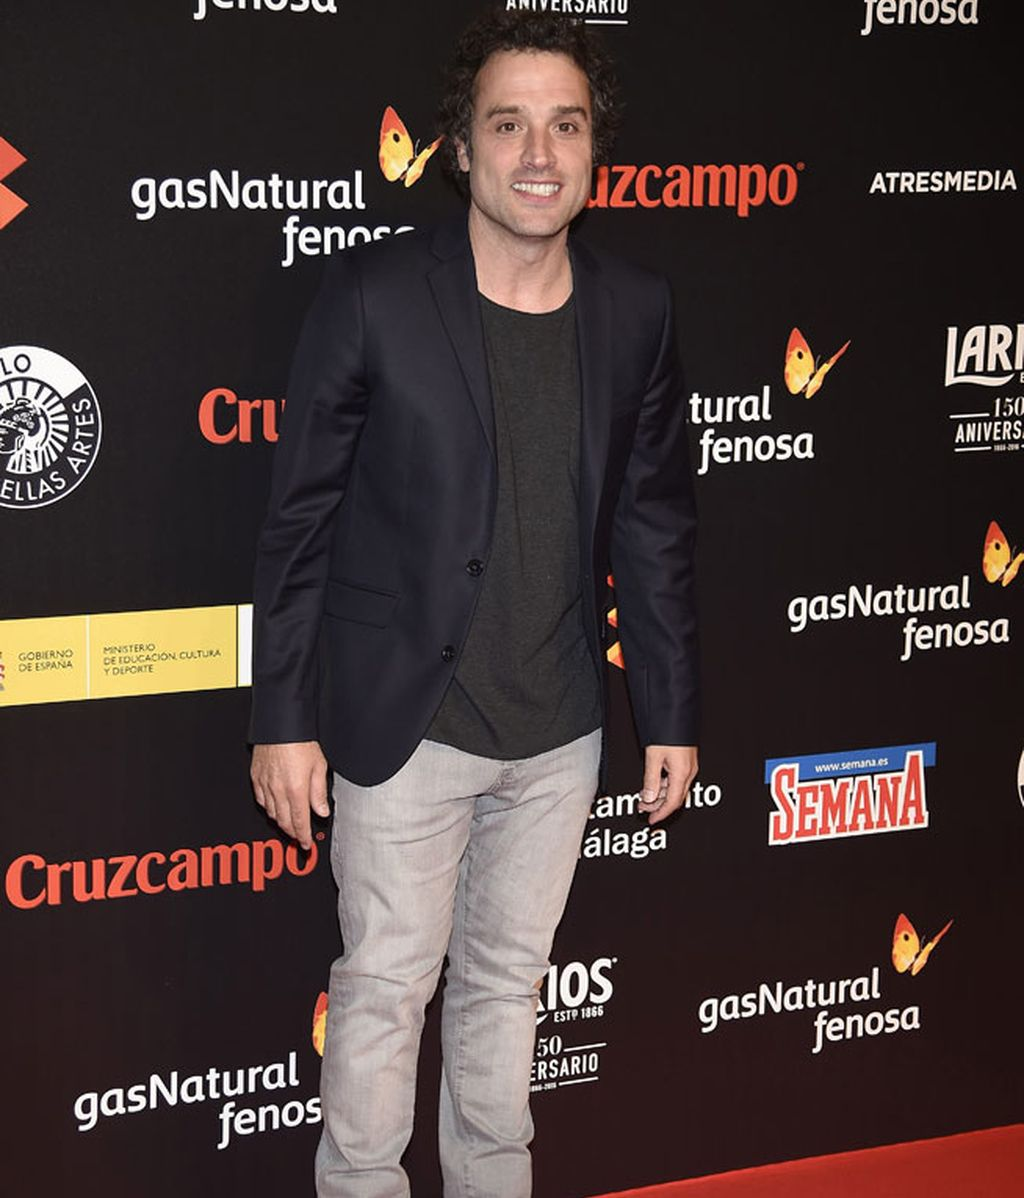 El actor y director Daniel Guzmán